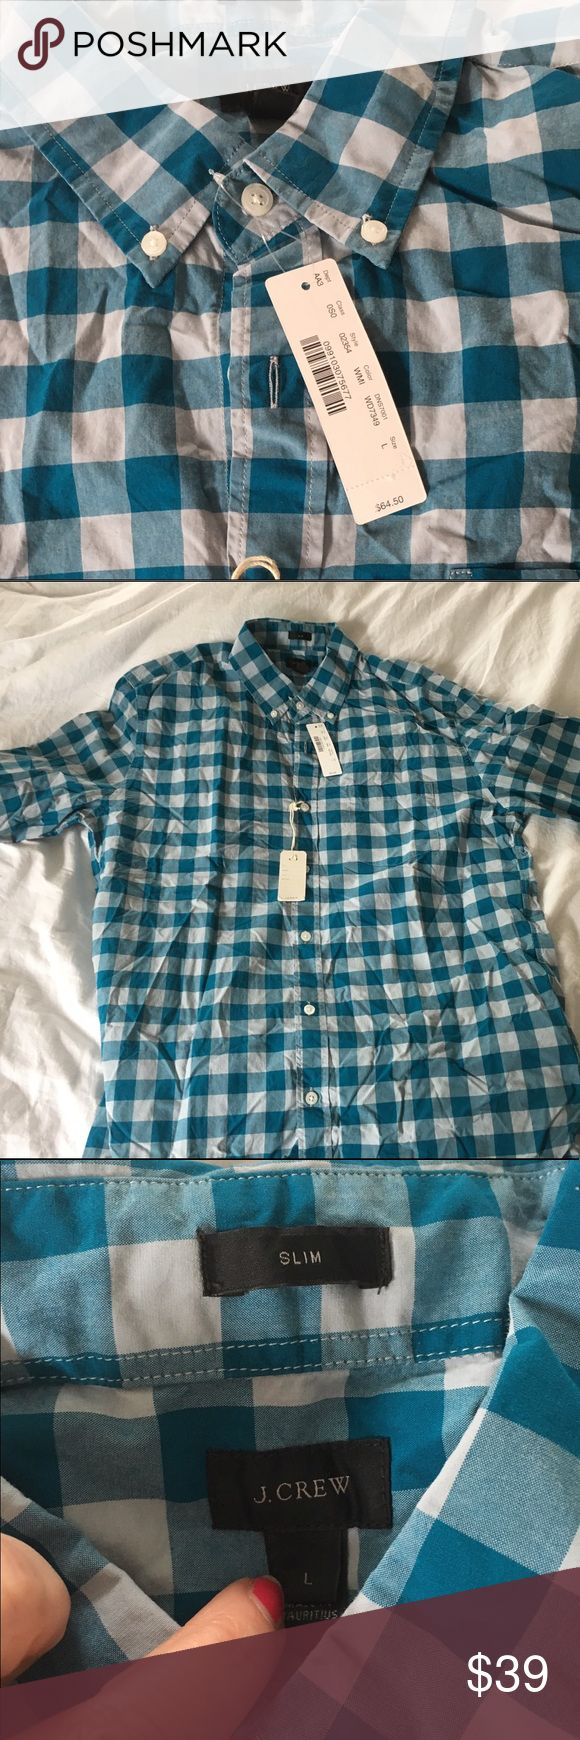 J Crew men's long sleeve button down shirt Teal blue/green checked long sleeve button down casual shirt from J Crew. Slim style size L. New with tags never worn. J Crew Shirts Casual Button Down Shirts